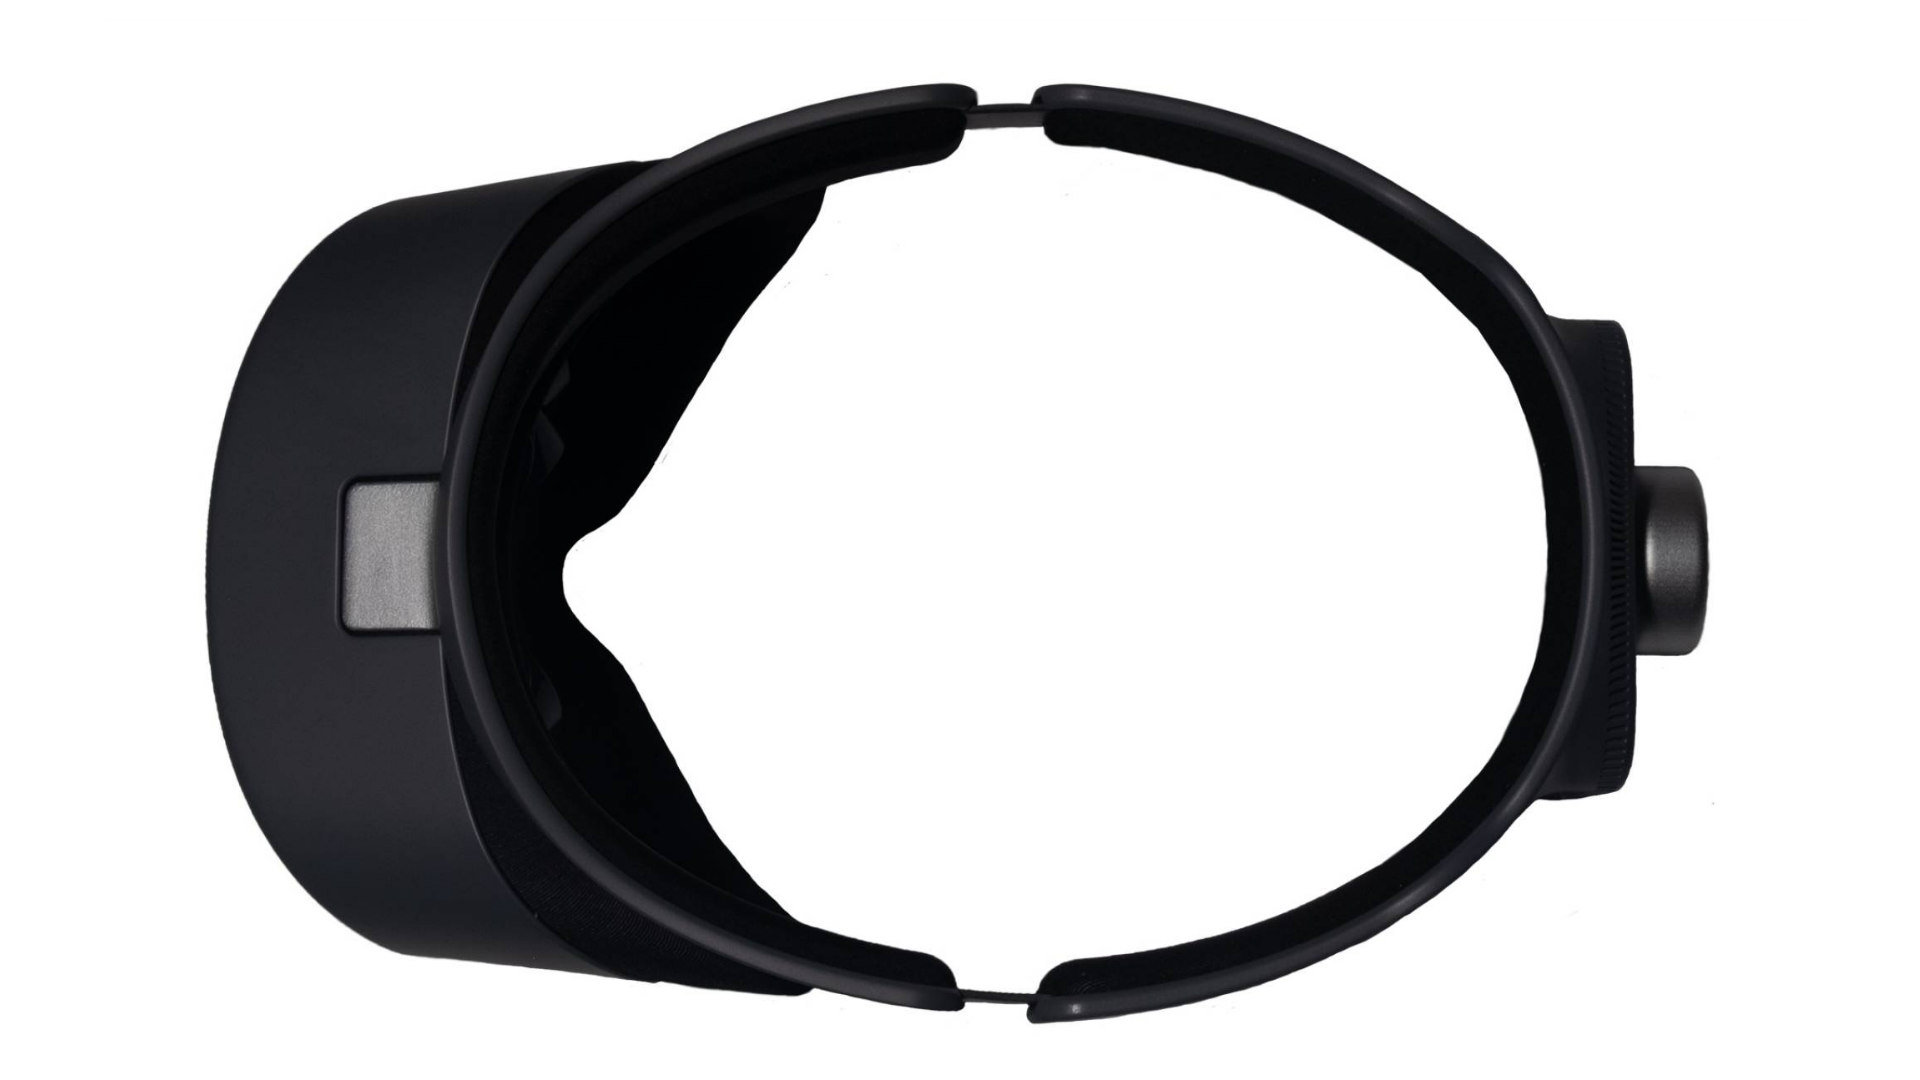 LYNX Reveals Standalone MR Headset with Snapdragon XR2, Eye-tracking, & Novel Optics – Highway to VR 15